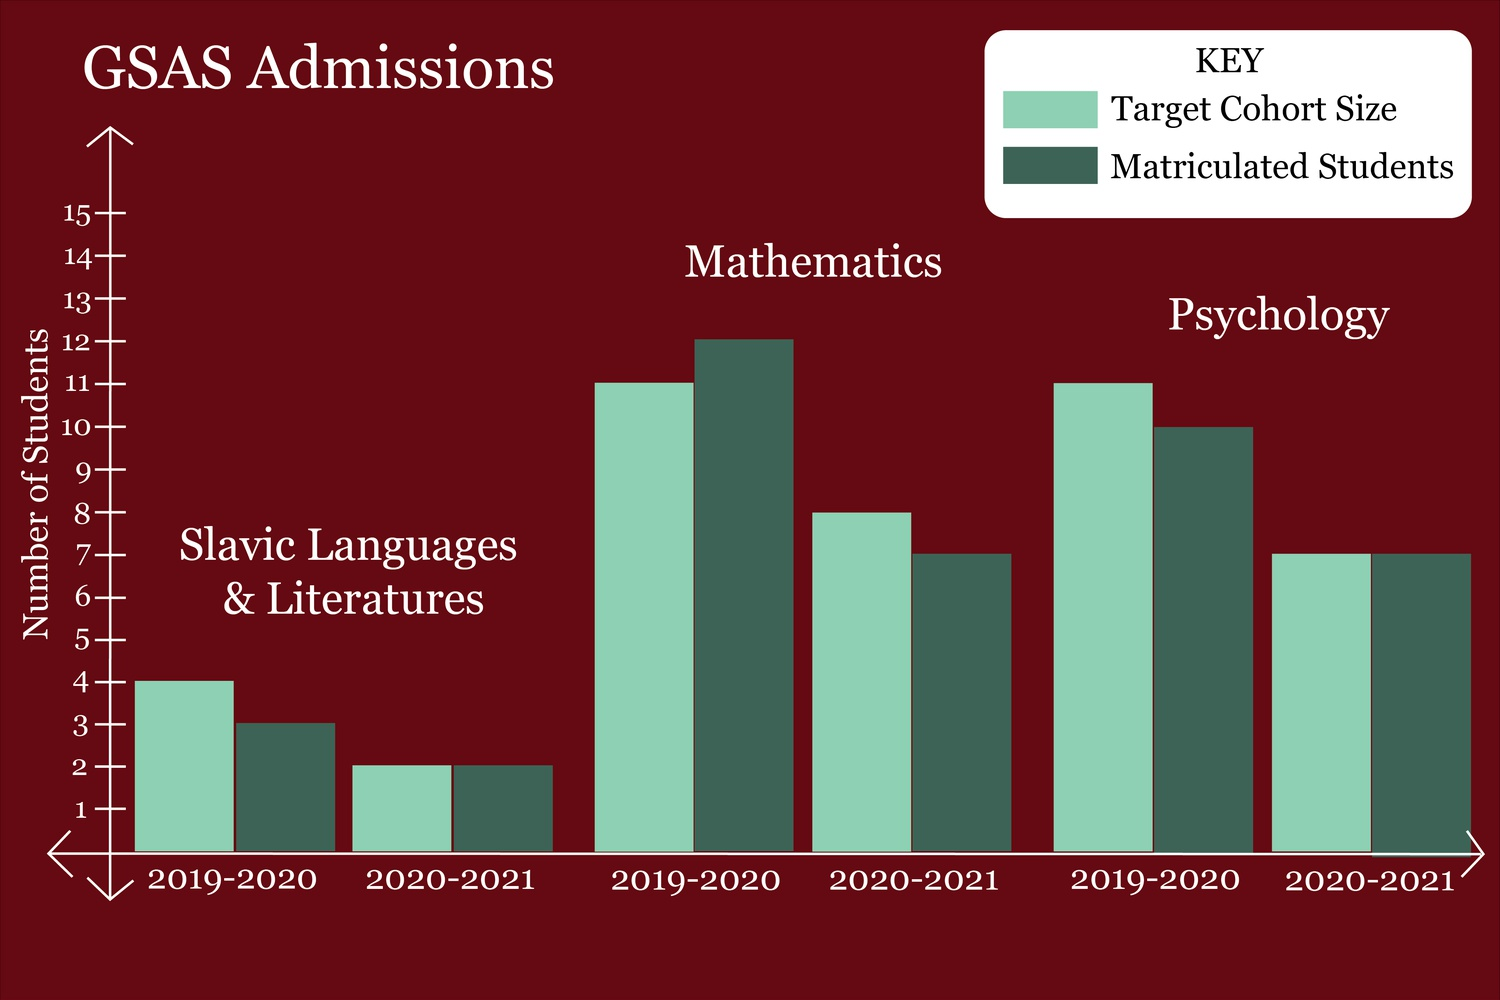 As various University graduate programs reduced or completely paused admissions during the past application cycle, many faculty across Harvard's schools expressed concern for the health of their programs, both in the short and long run.